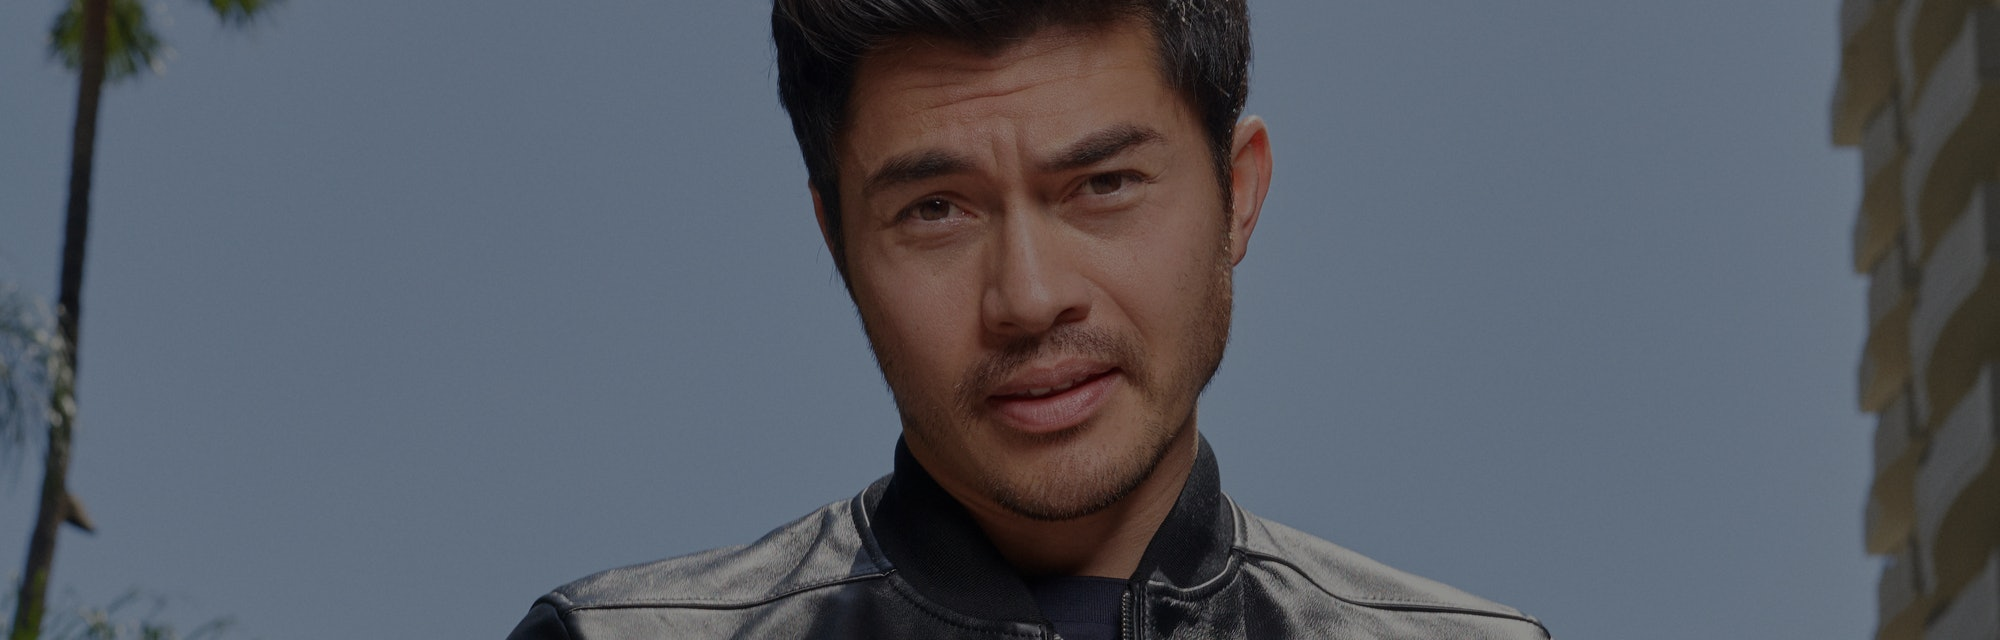 Henry Golding, 34, photographed in Los Angeles for Inverse.